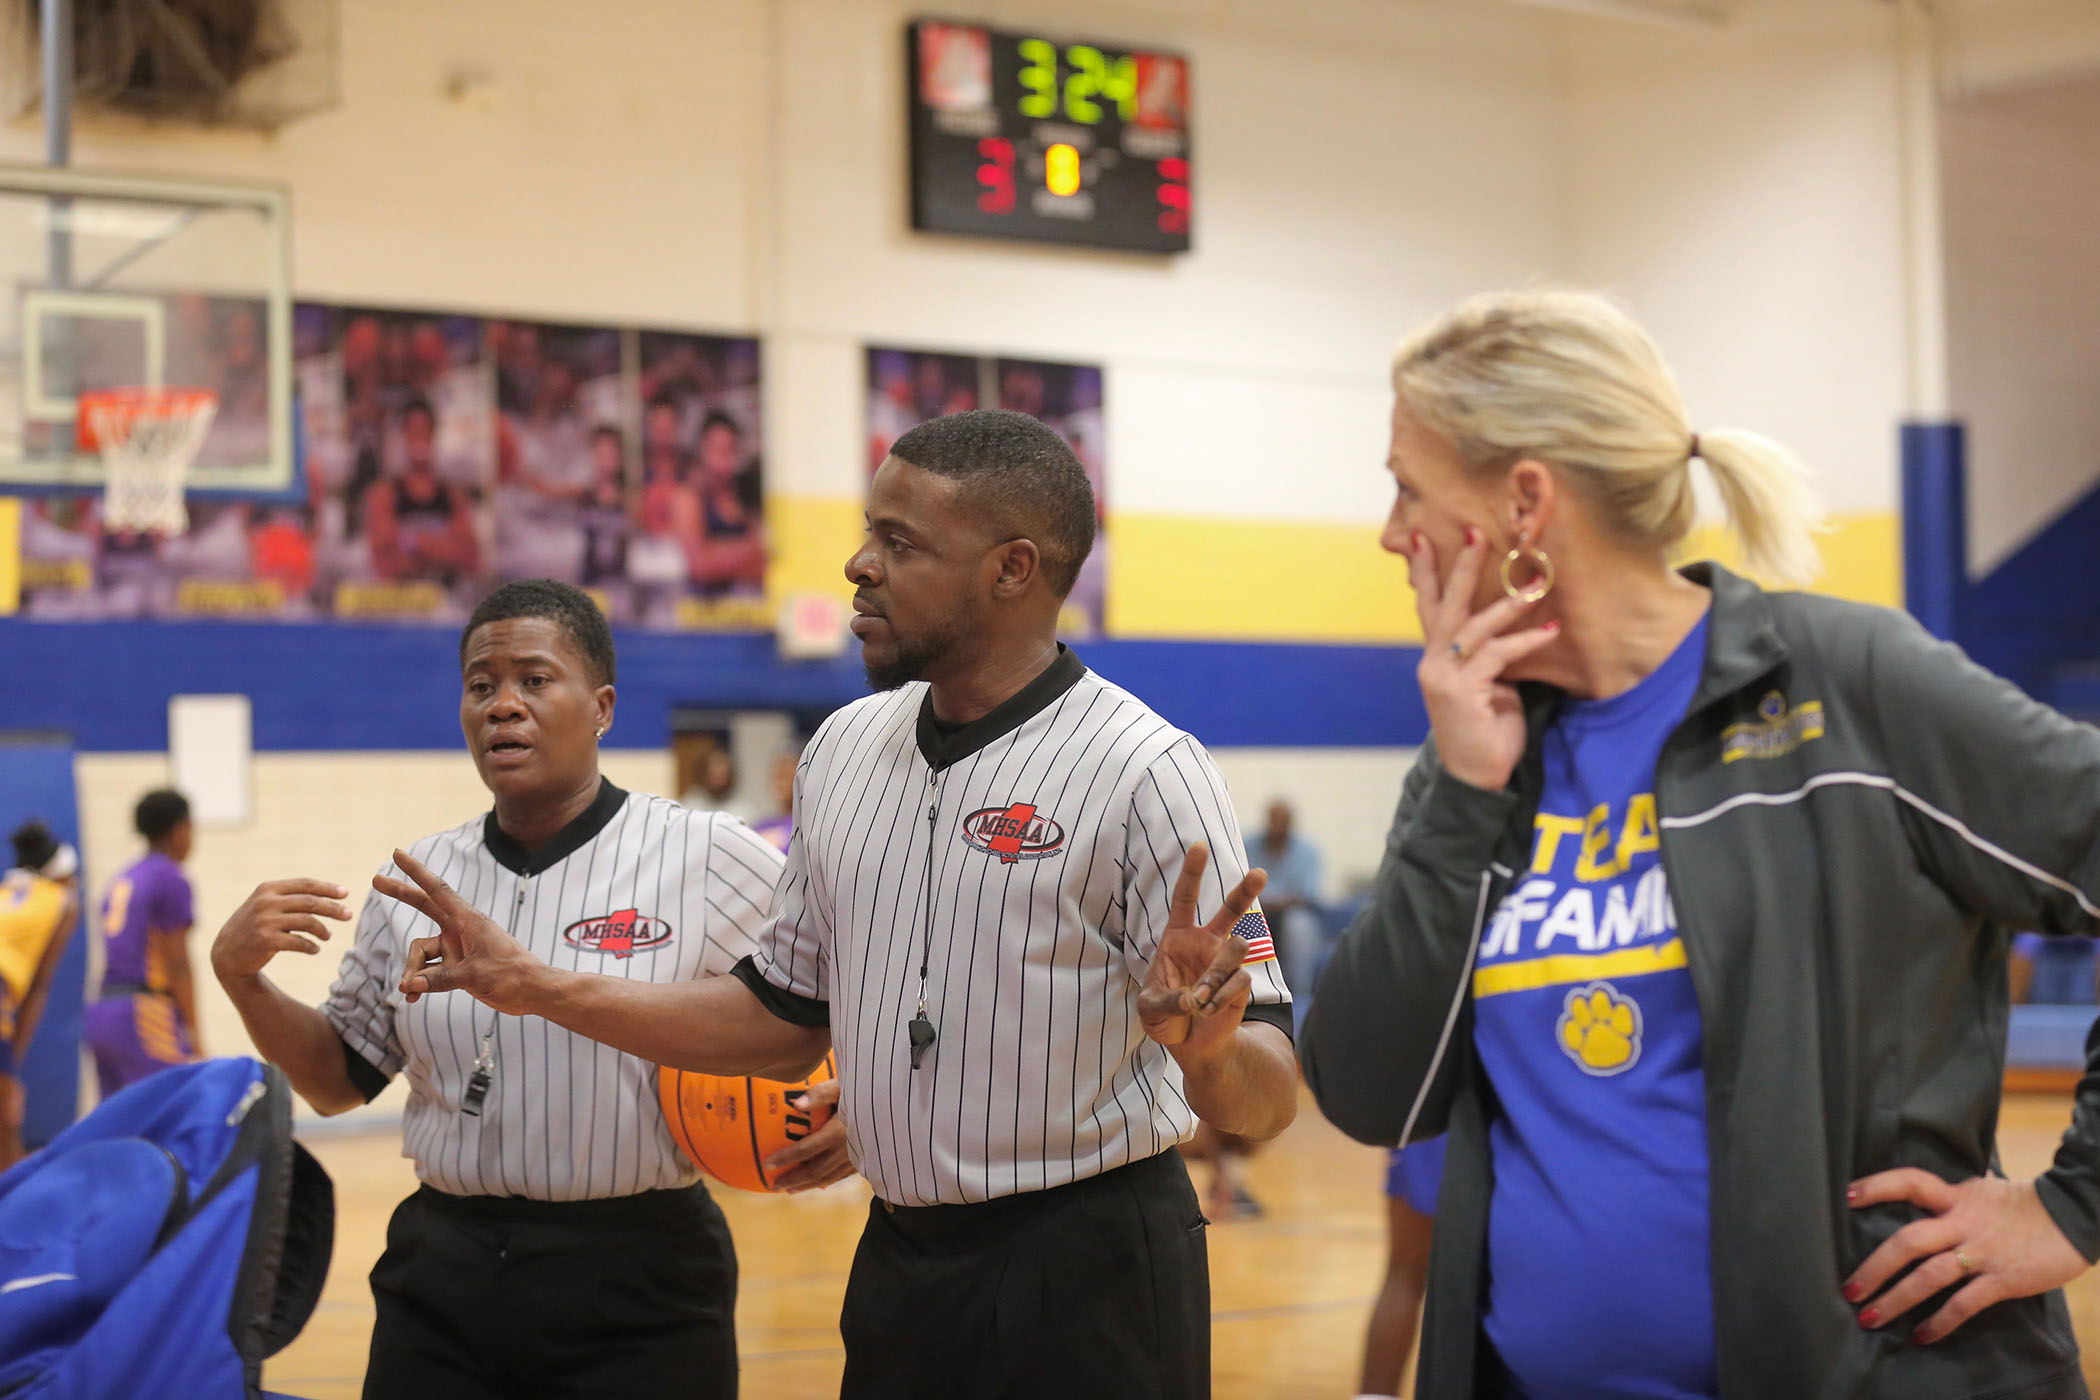 Coach Vance questions a call in a basketball game.